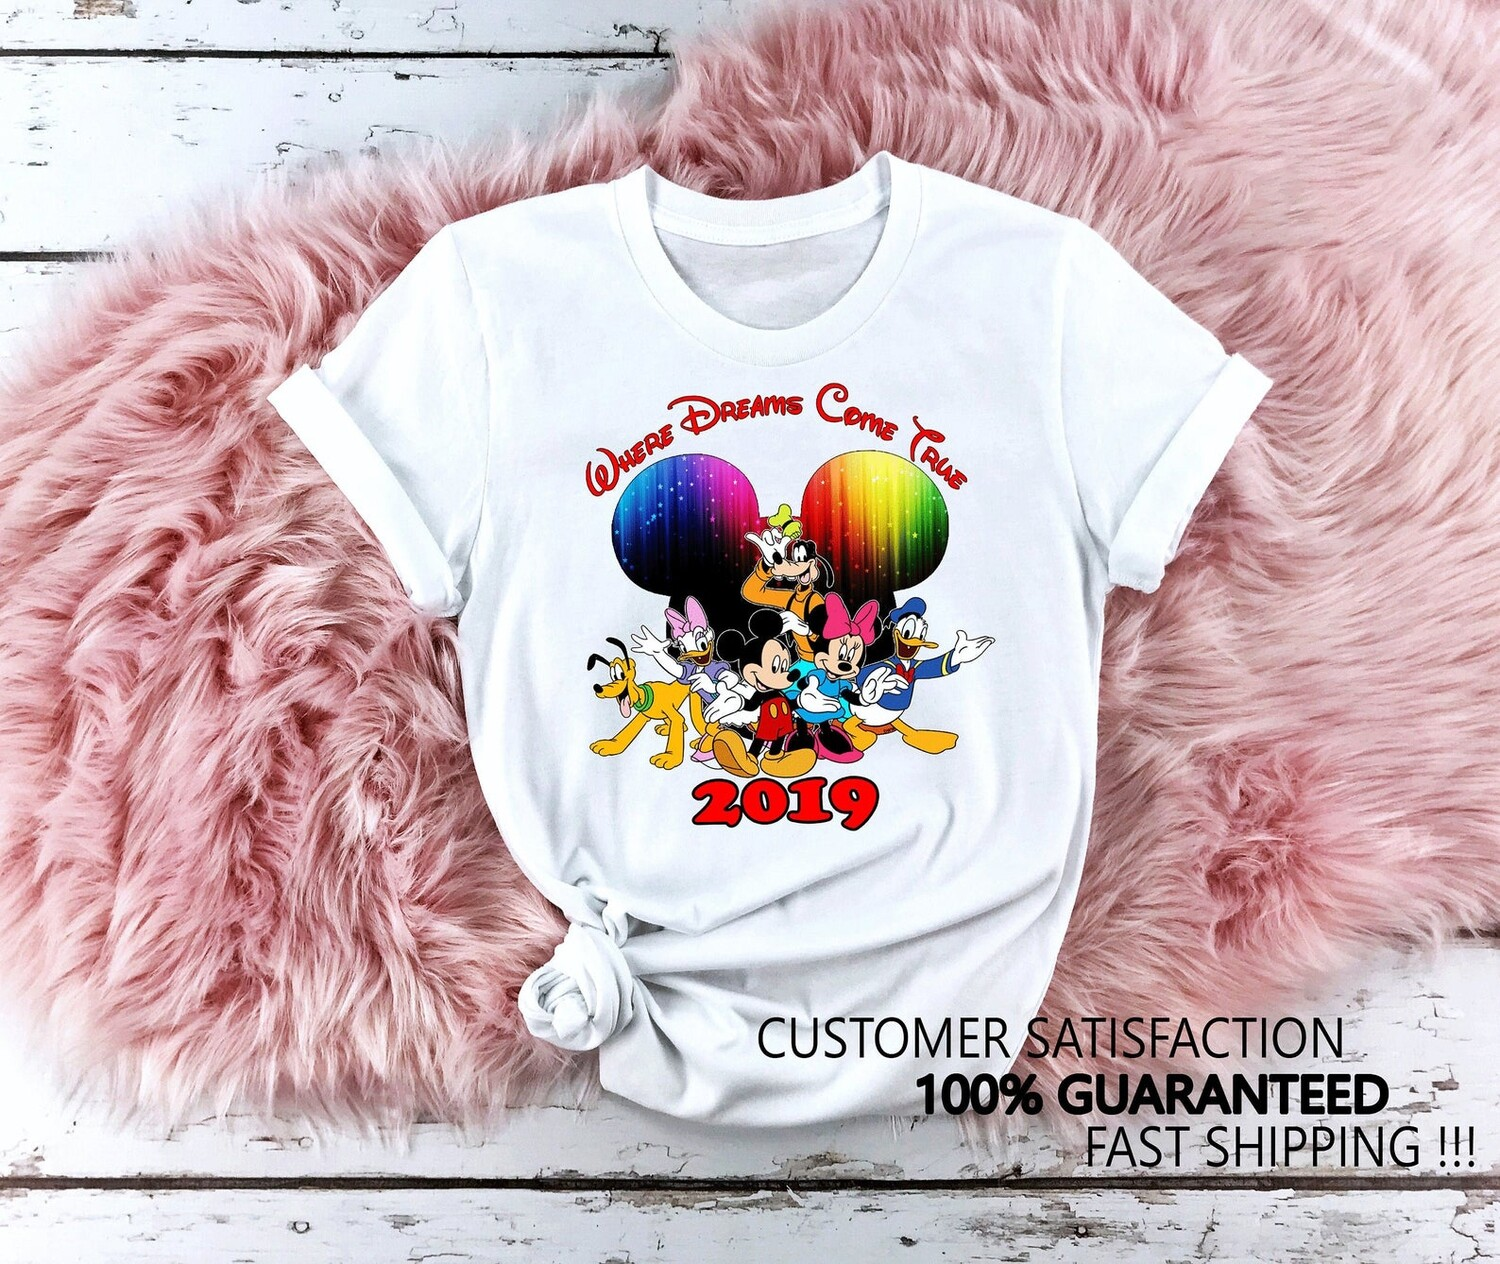 Disney World Where Dreams Come True, Disney Family Shirts, Family Vacation Shirts 2019, Disney Family Trip, Disney Personalized Shirts D41, matching disney tee, matching disney, disney family shirts